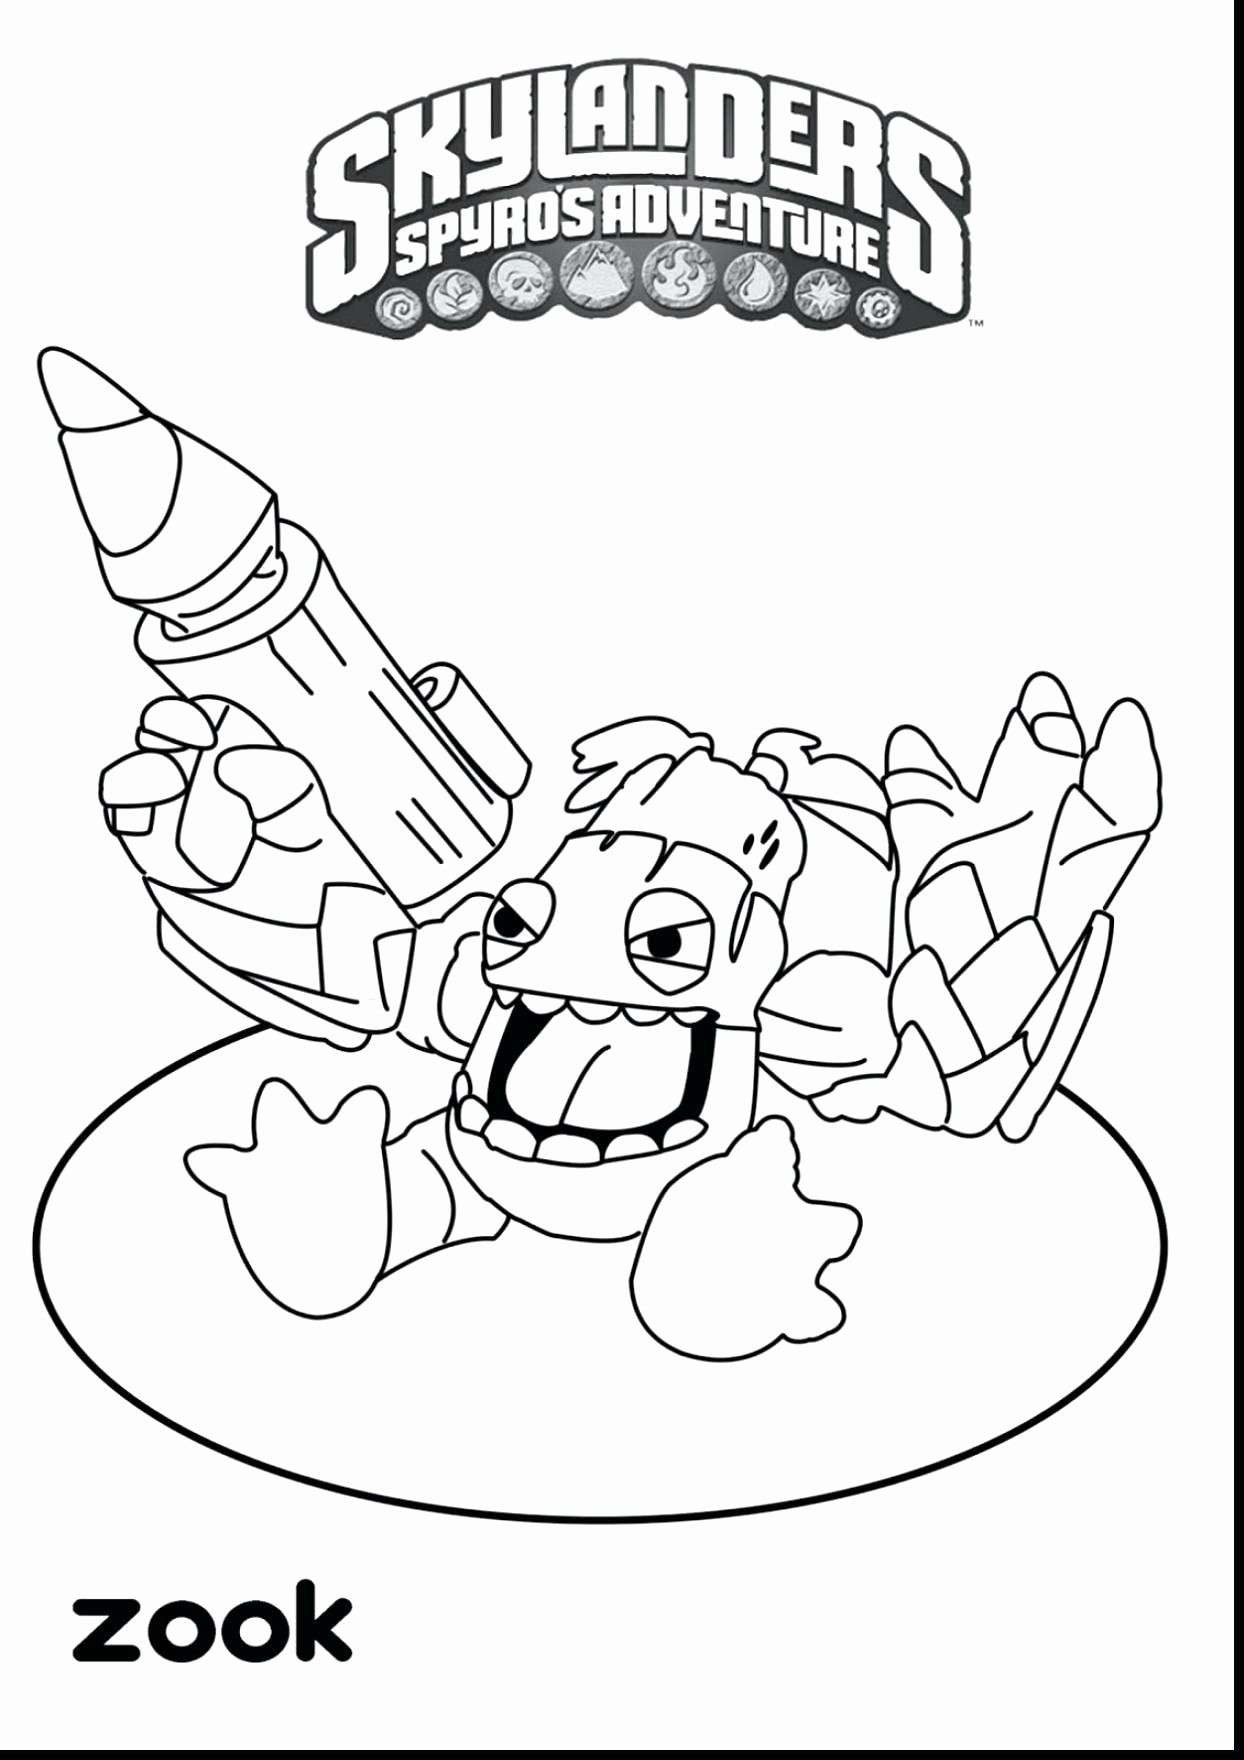 Llama Christmas Coloring Pages With Ornament Popular